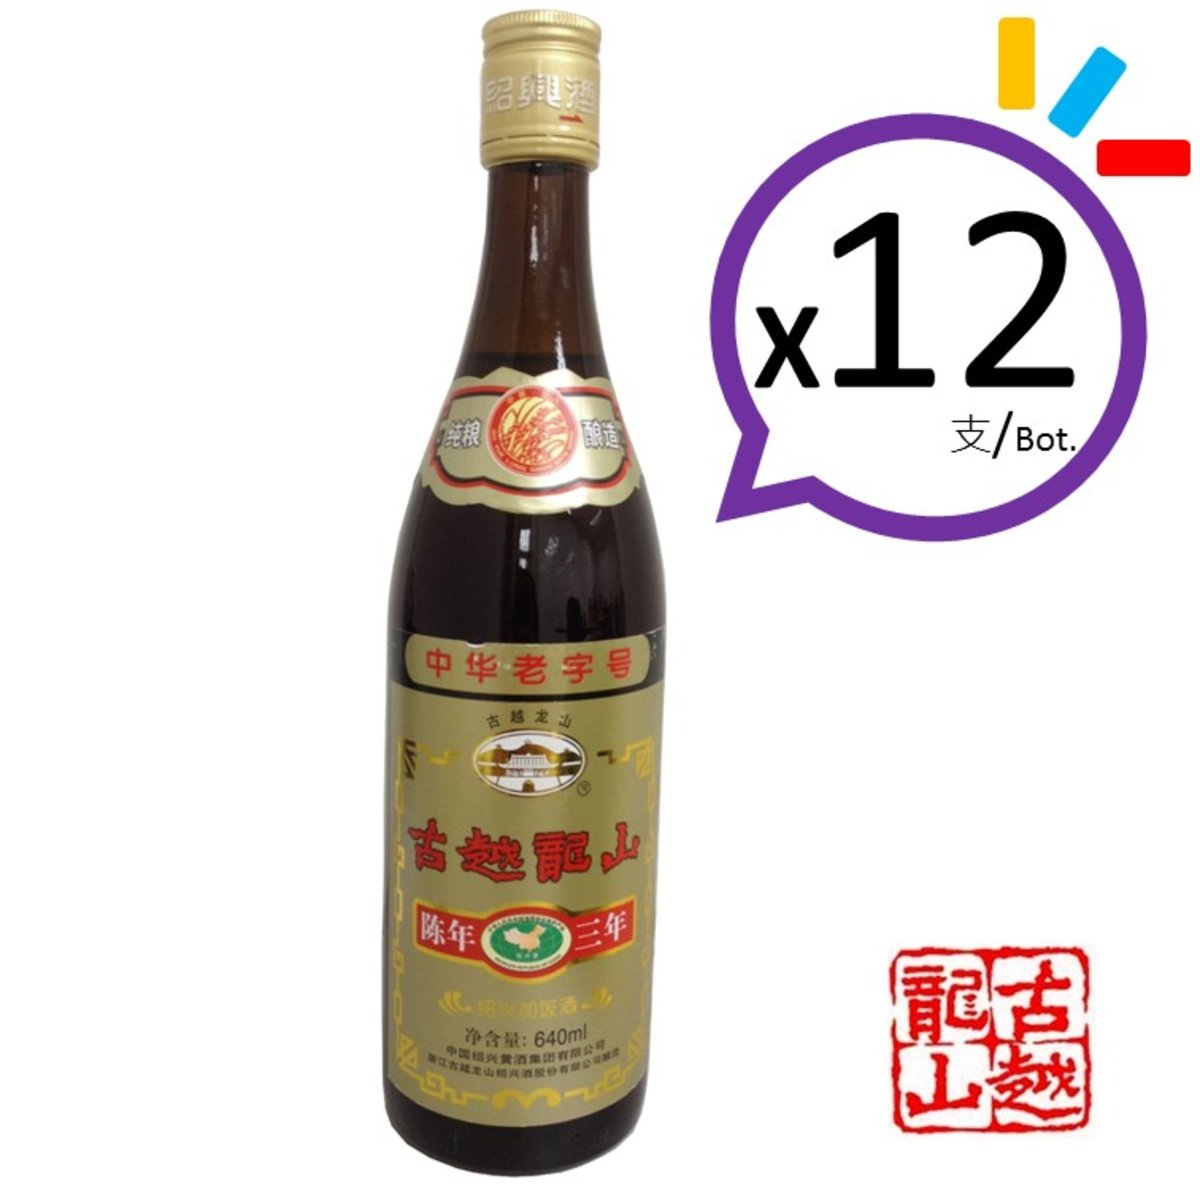 Chen Nian Shao Xing Jia Fan Wine 3 Years Golden Label x12 Bottles